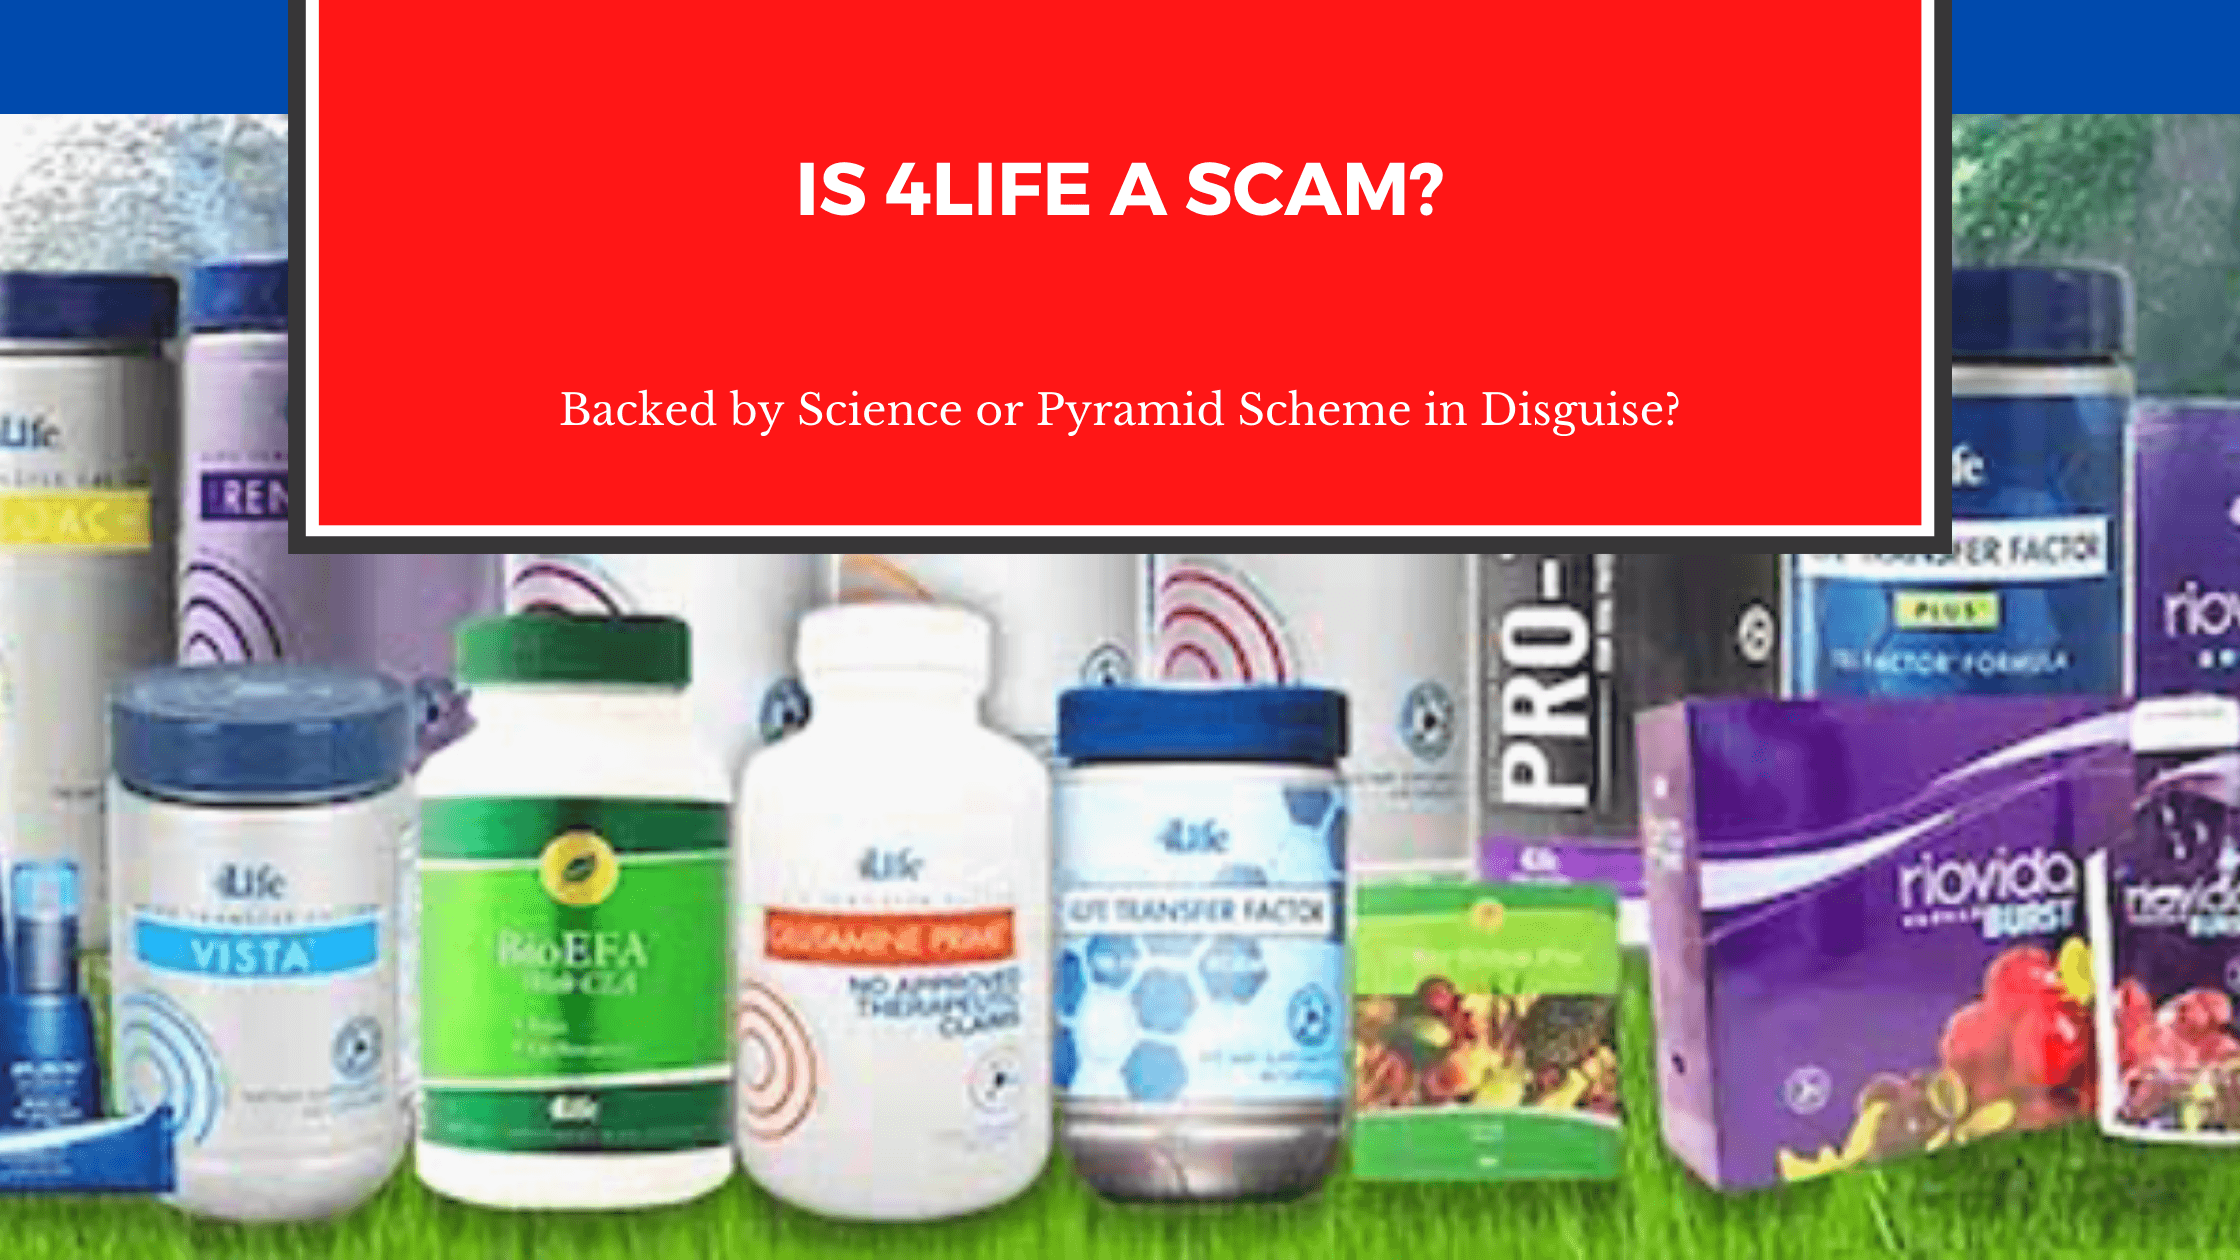 Is 4Life a Scam